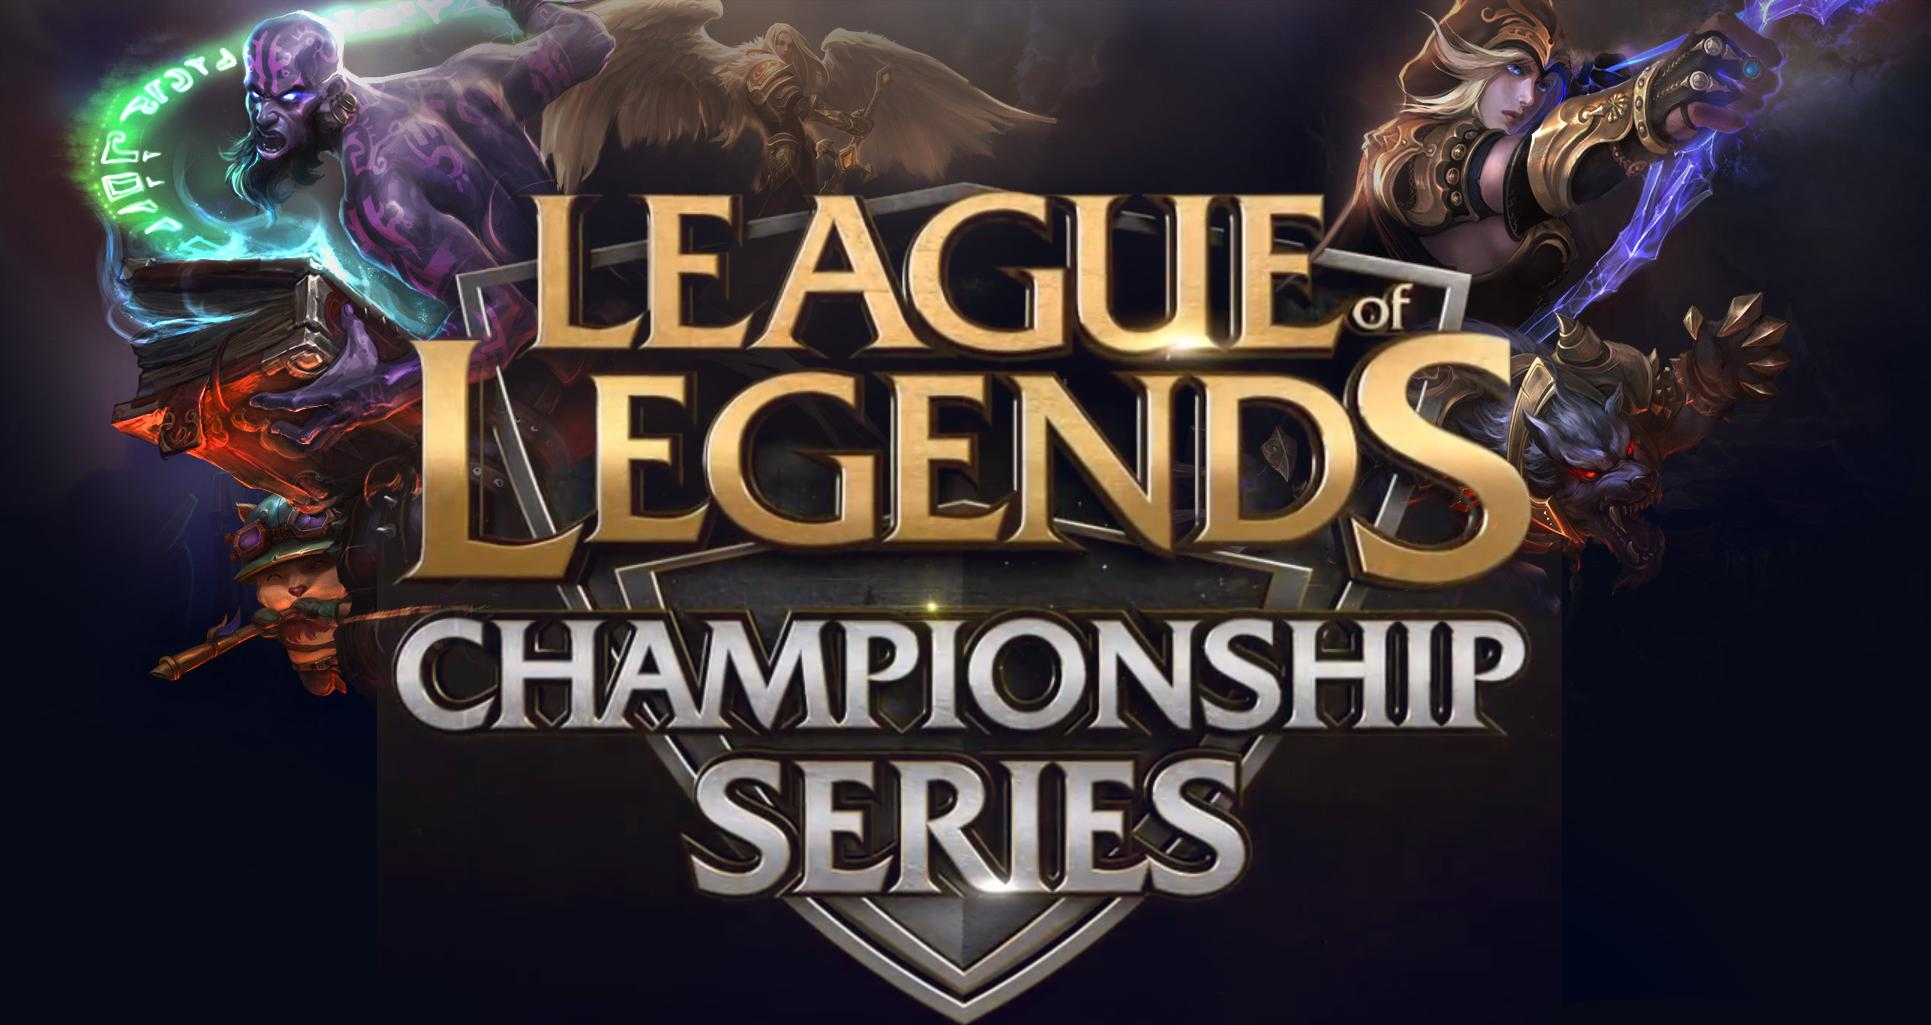 The EU LCS Caster Team Has Been Announced